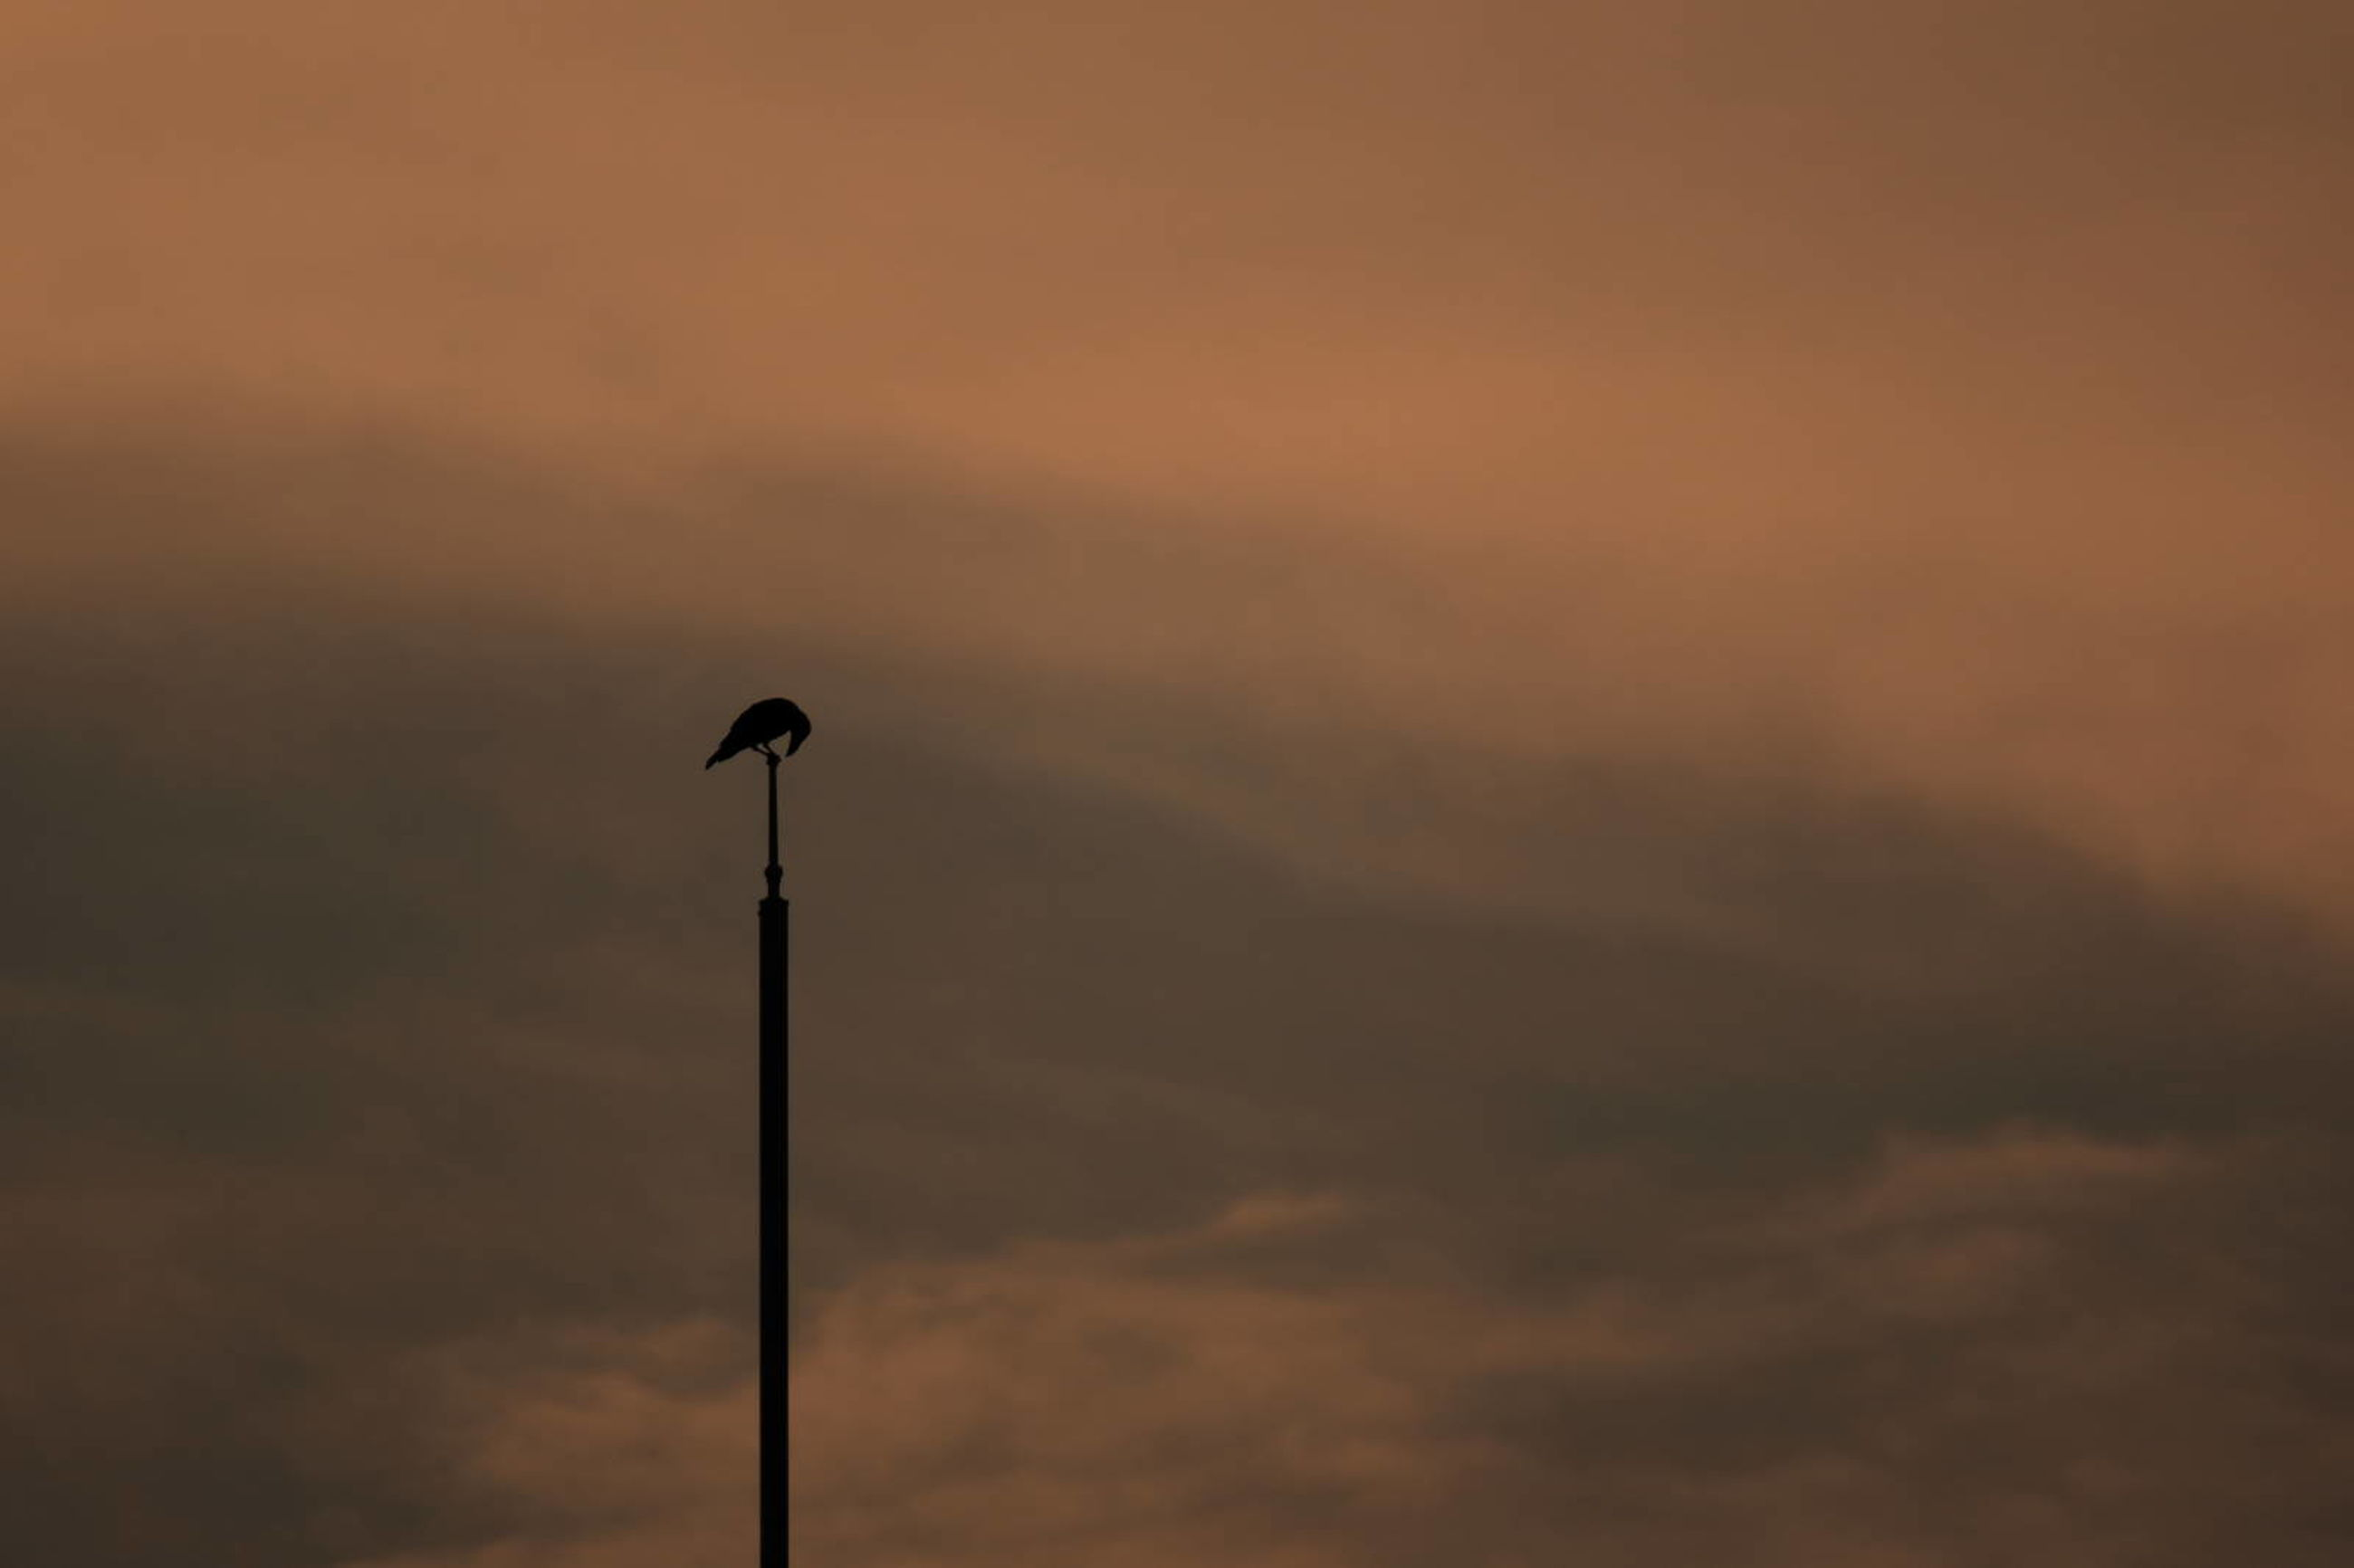 sky, sunset, cloud - sky, silhouette, low angle view, lighting equipment, street, no people, street light, beauty in nature, orange color, nature, scenics - nature, technology, outdoors, bird, vertebrate, tranquility, pole, animal themes, electrical equipment